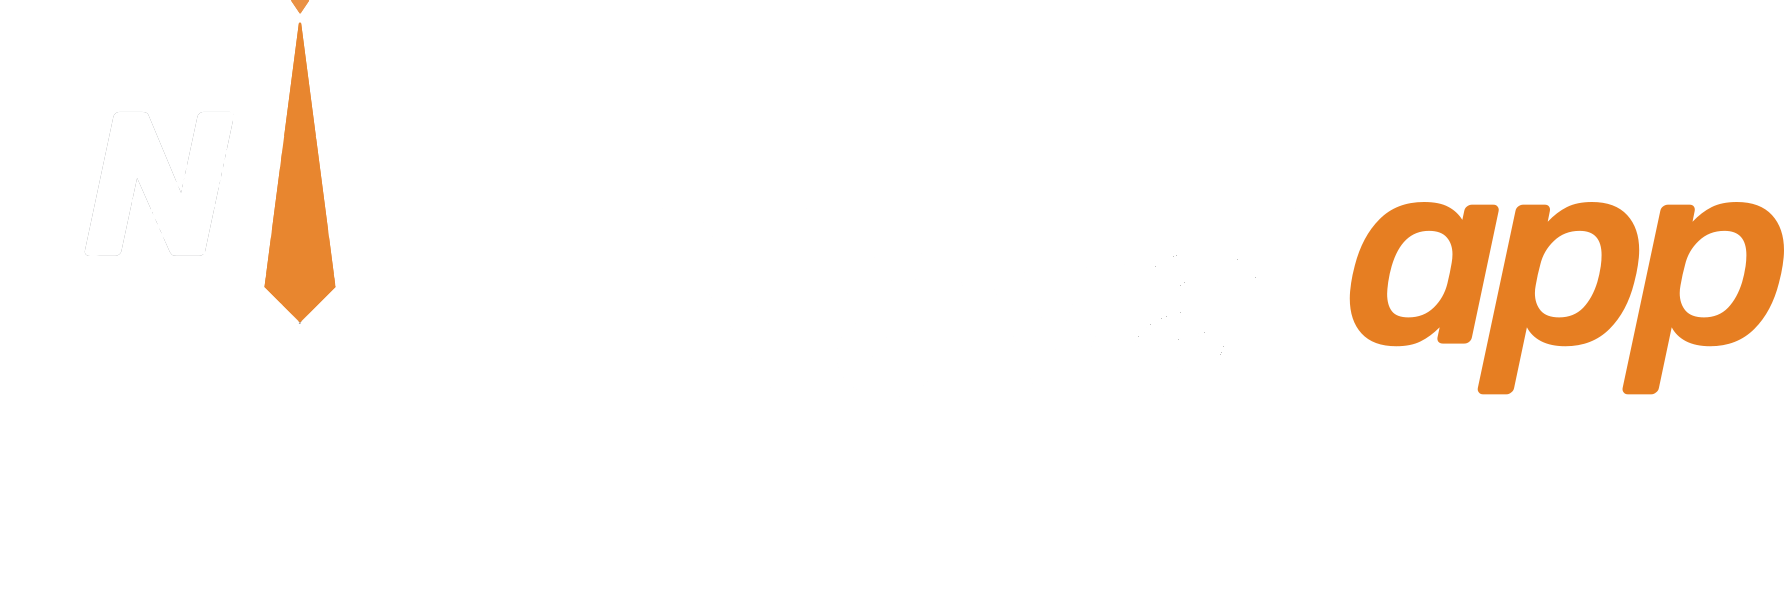 Navalapp. Sailing Yachts Design & Performance